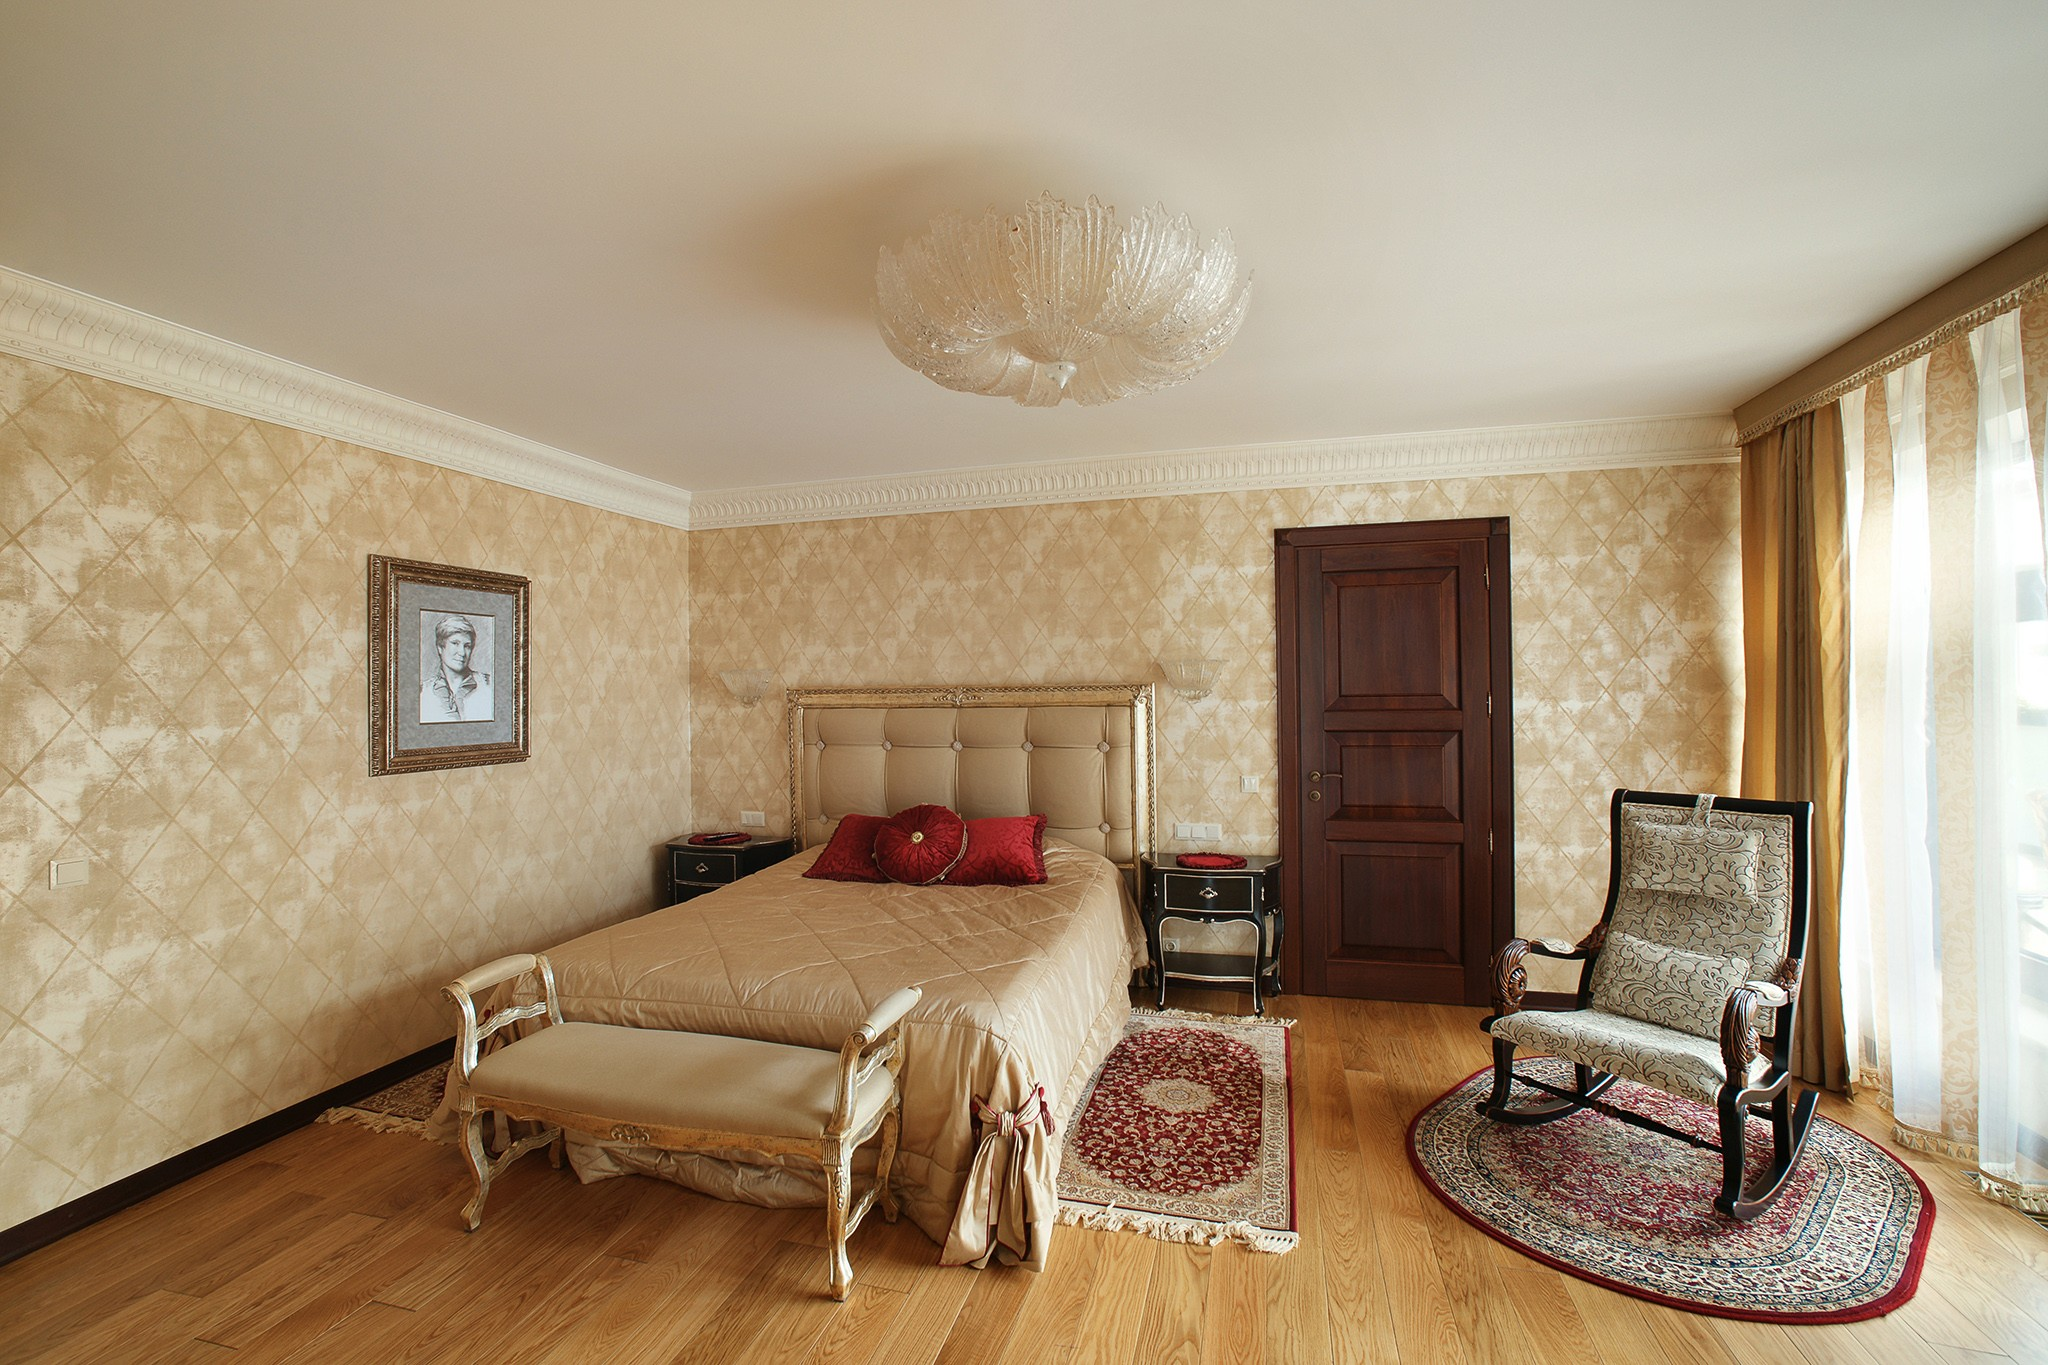 Interior of a country house. Some photos for the architect